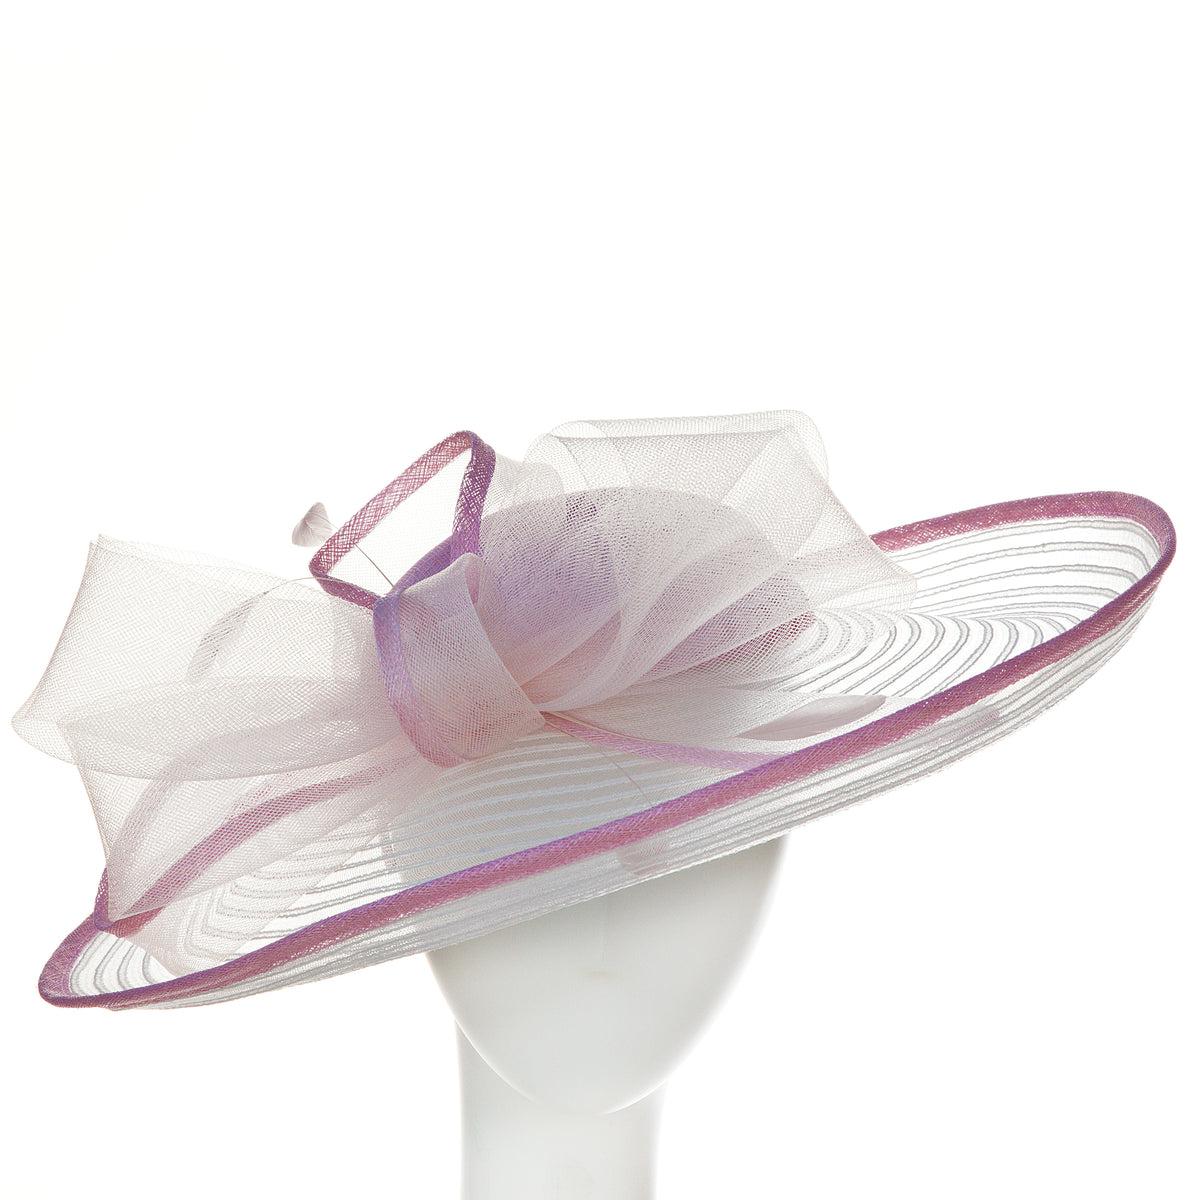 white and lavender women's derby hat with bow